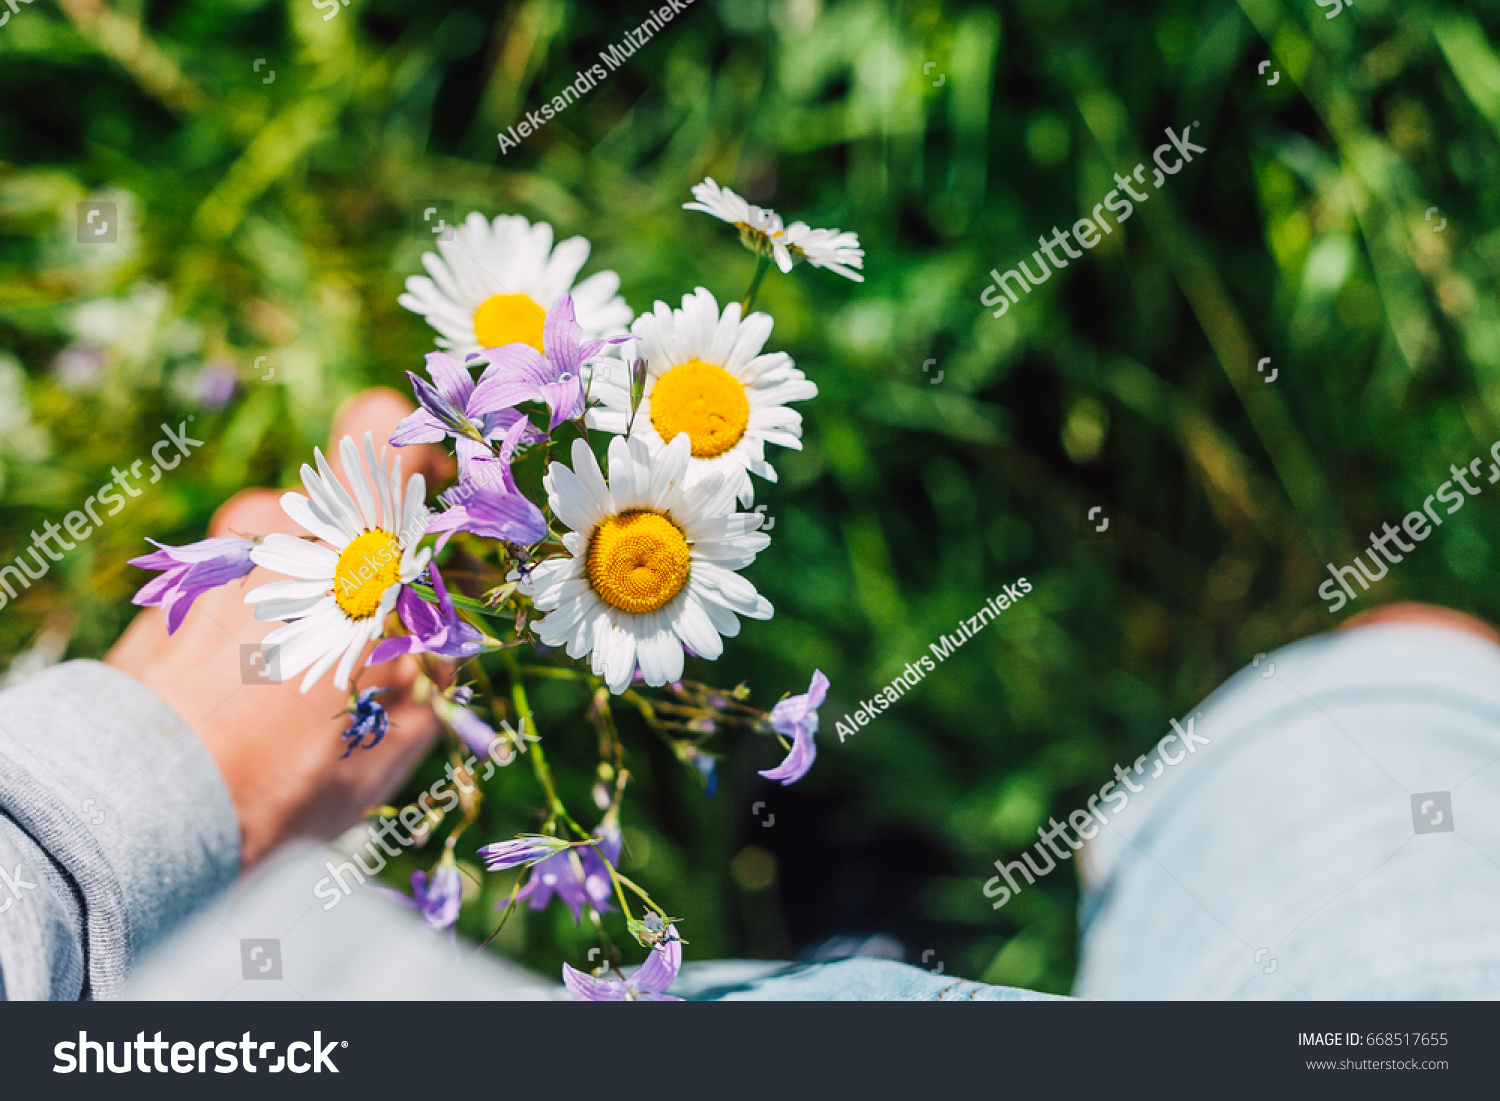 Man holding flowers bouquet summer flowers stock photo image man holding flowers bouquet of summer flowers first person perspective izmirmasajfo